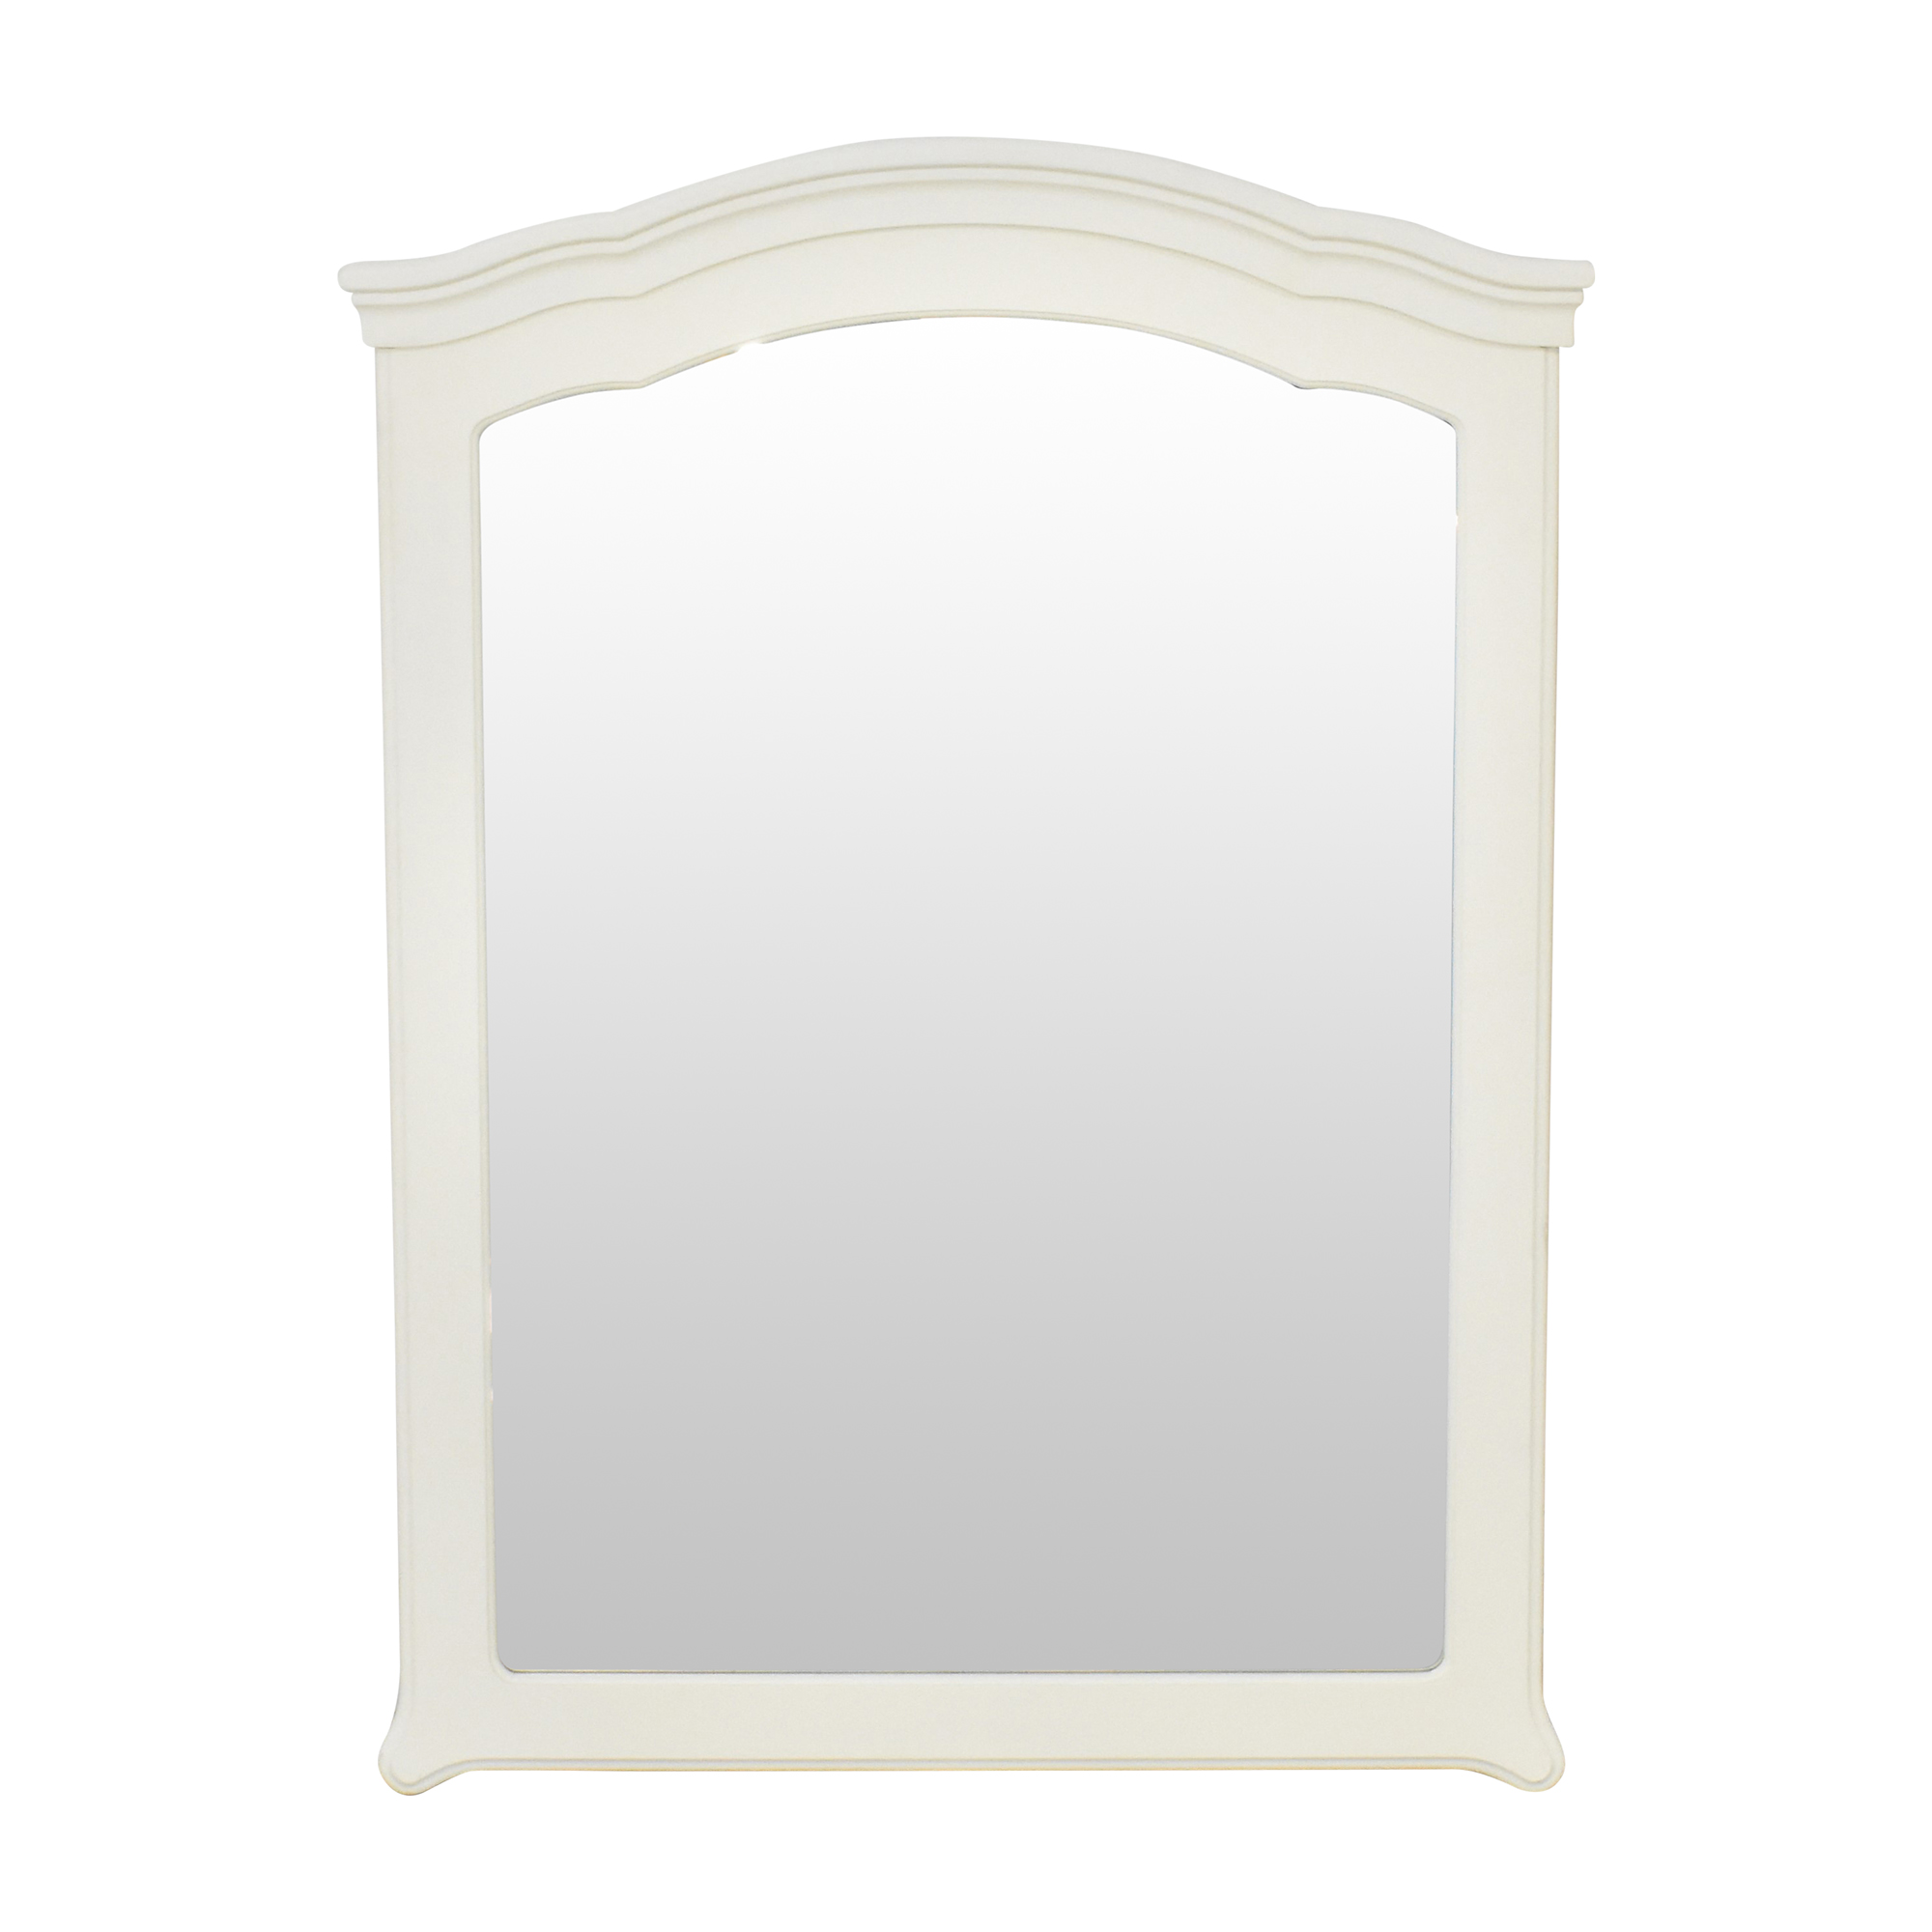 shop Natart Natart Framed Wall Mirror online